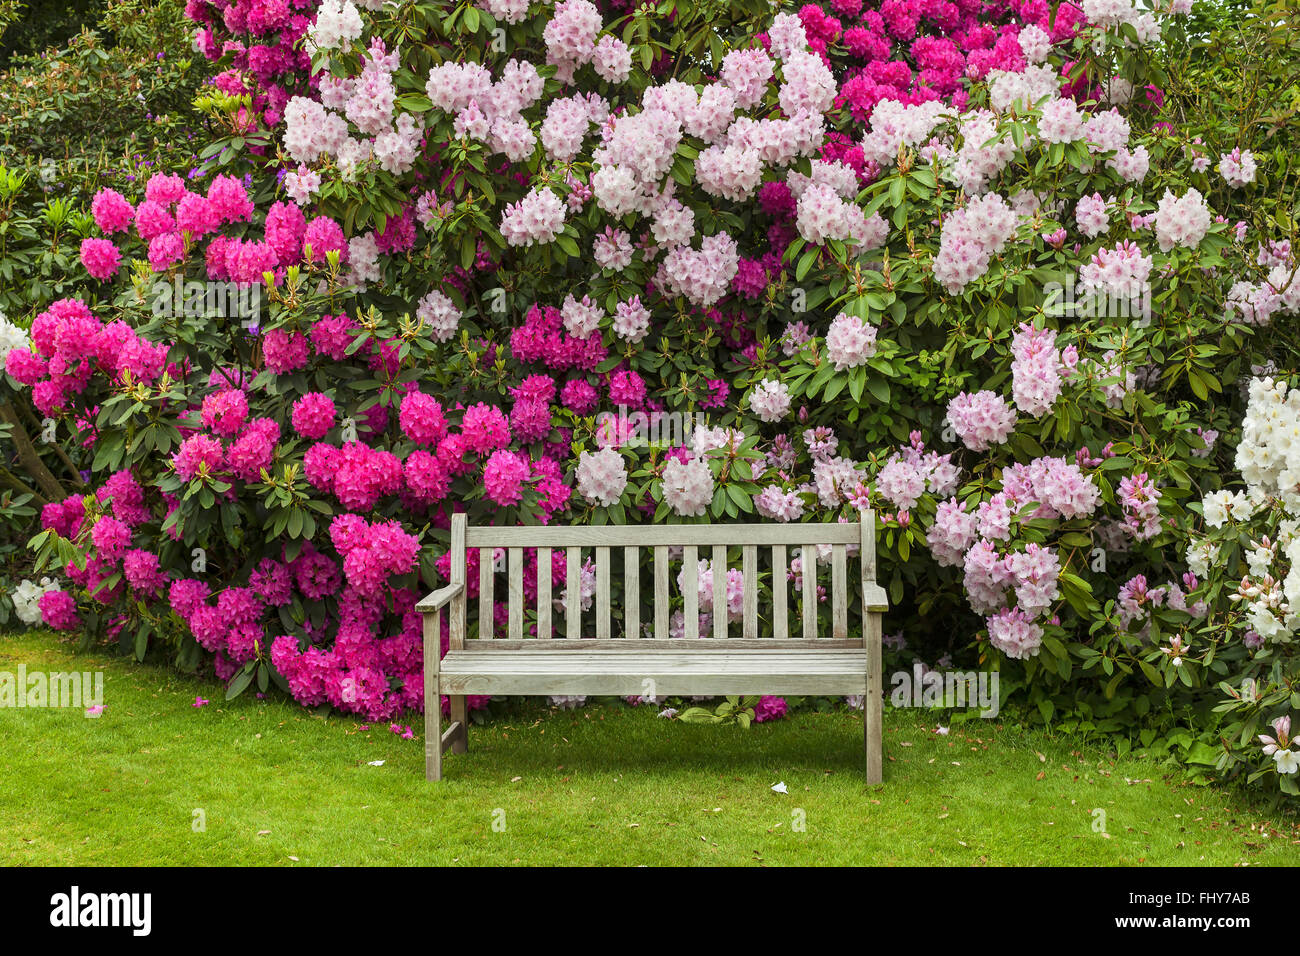 Rhododendron garden with wooden bench. Stock Photo